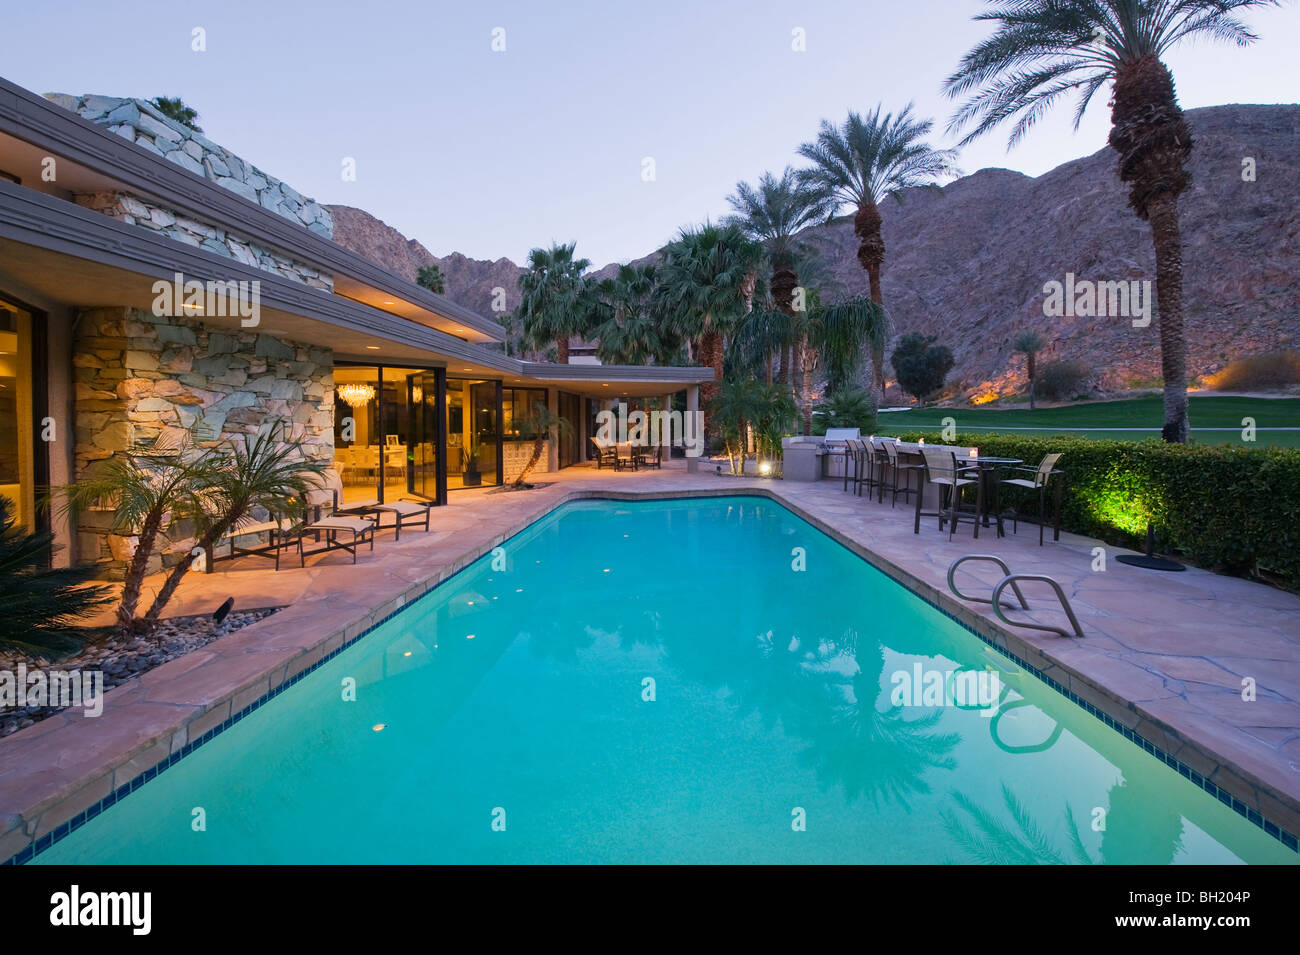 Luxury home swimming pools 30 Million Dollar Swimming Pool Exterior Of Palm Springs Home Stock Image Alamy Luxury Home Swimming Pool Usa Stock Photos Luxury Home Swimming